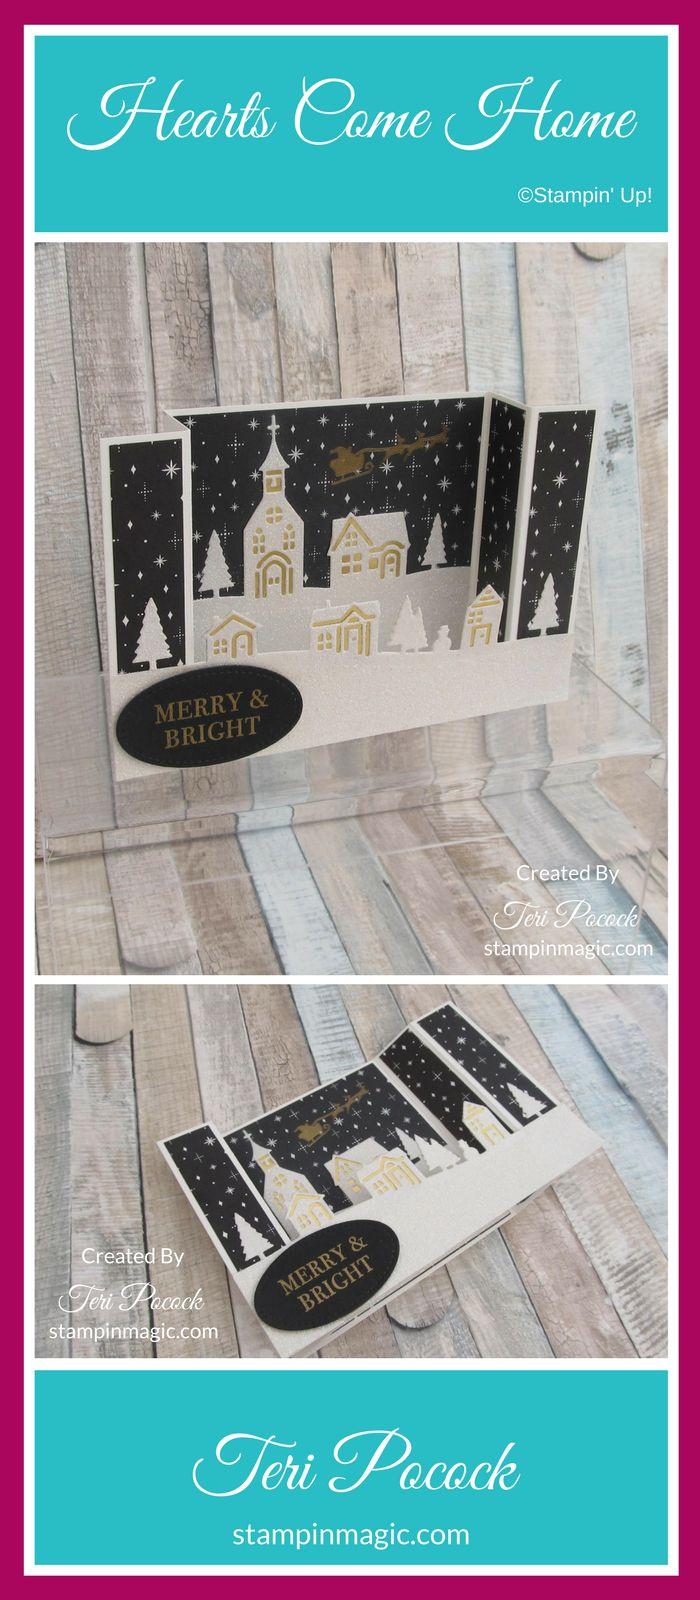 Hearts Come Home by Stampin Up. Created by UK Independent Demonstrator Teri Pocock. Click through for more details..#teripocock #stampinup #stampinupuk #heartscomehome